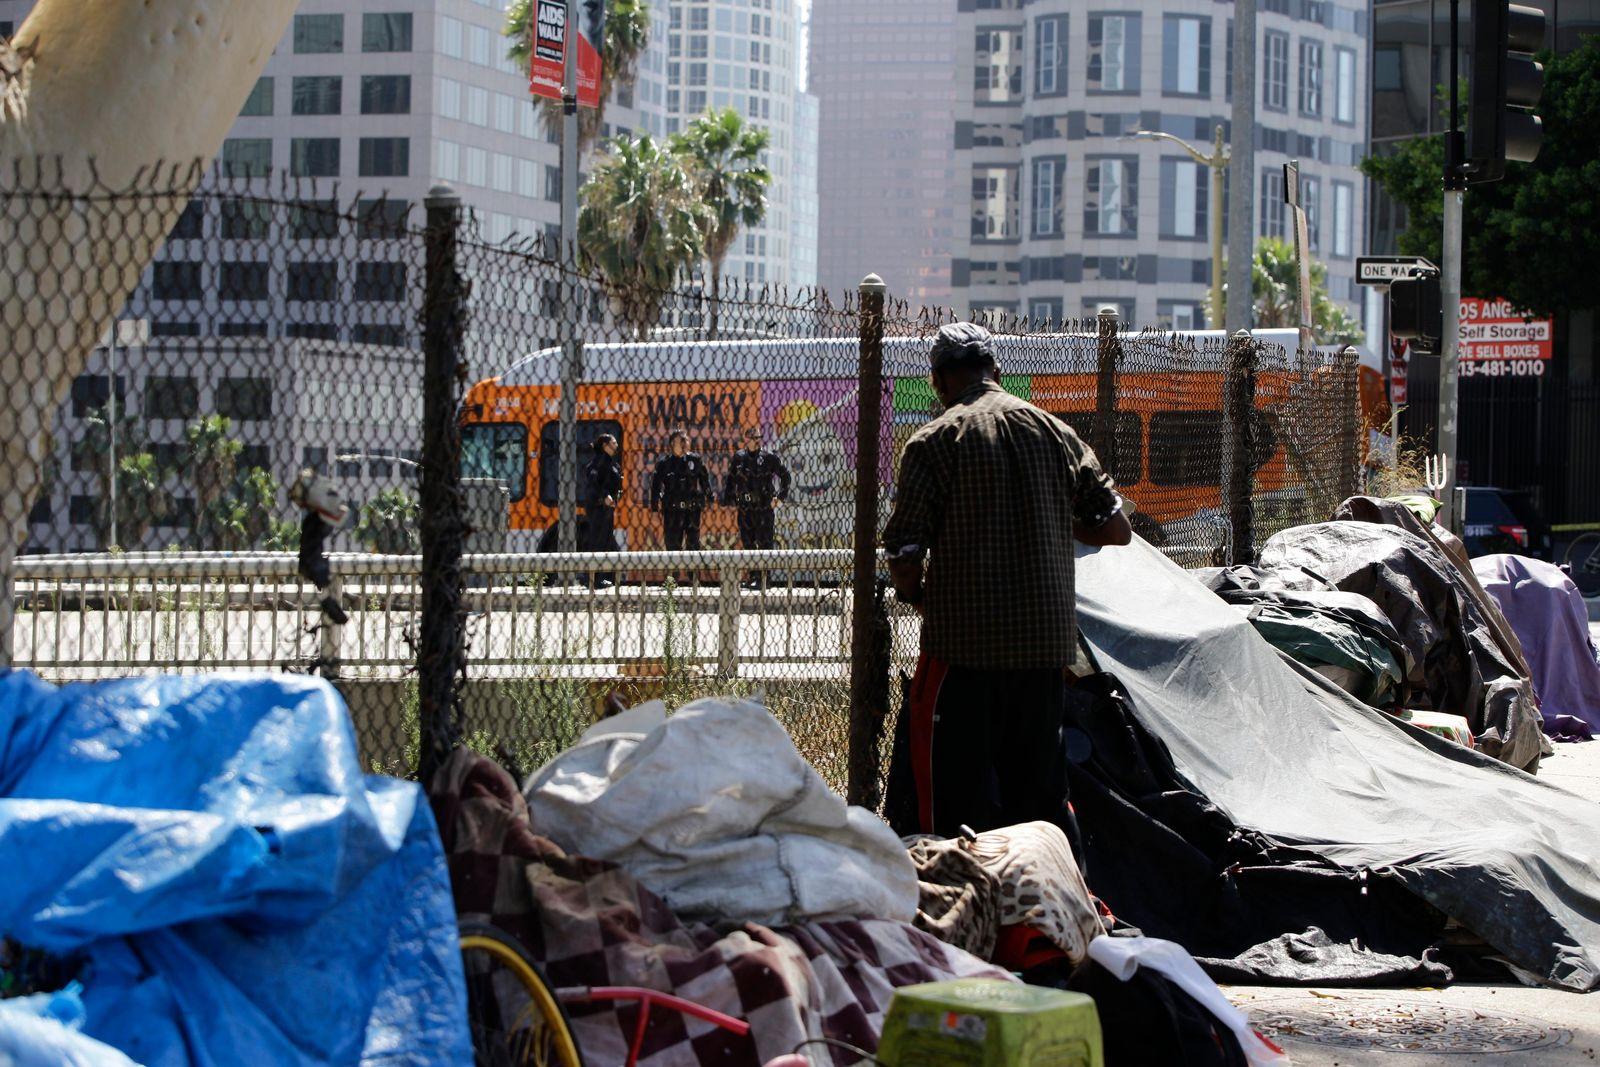 A newly displaced homeless camp is seen while Los Angeles Police officers guard a Harbor Freeway ramp during the visit of President Donald Trump in Los Angeles, Tuesday, Sept. 17, 2019. ess but offering no specifics beyond the mention of creating a task force. (AP Photo/Damian Dovarganes)